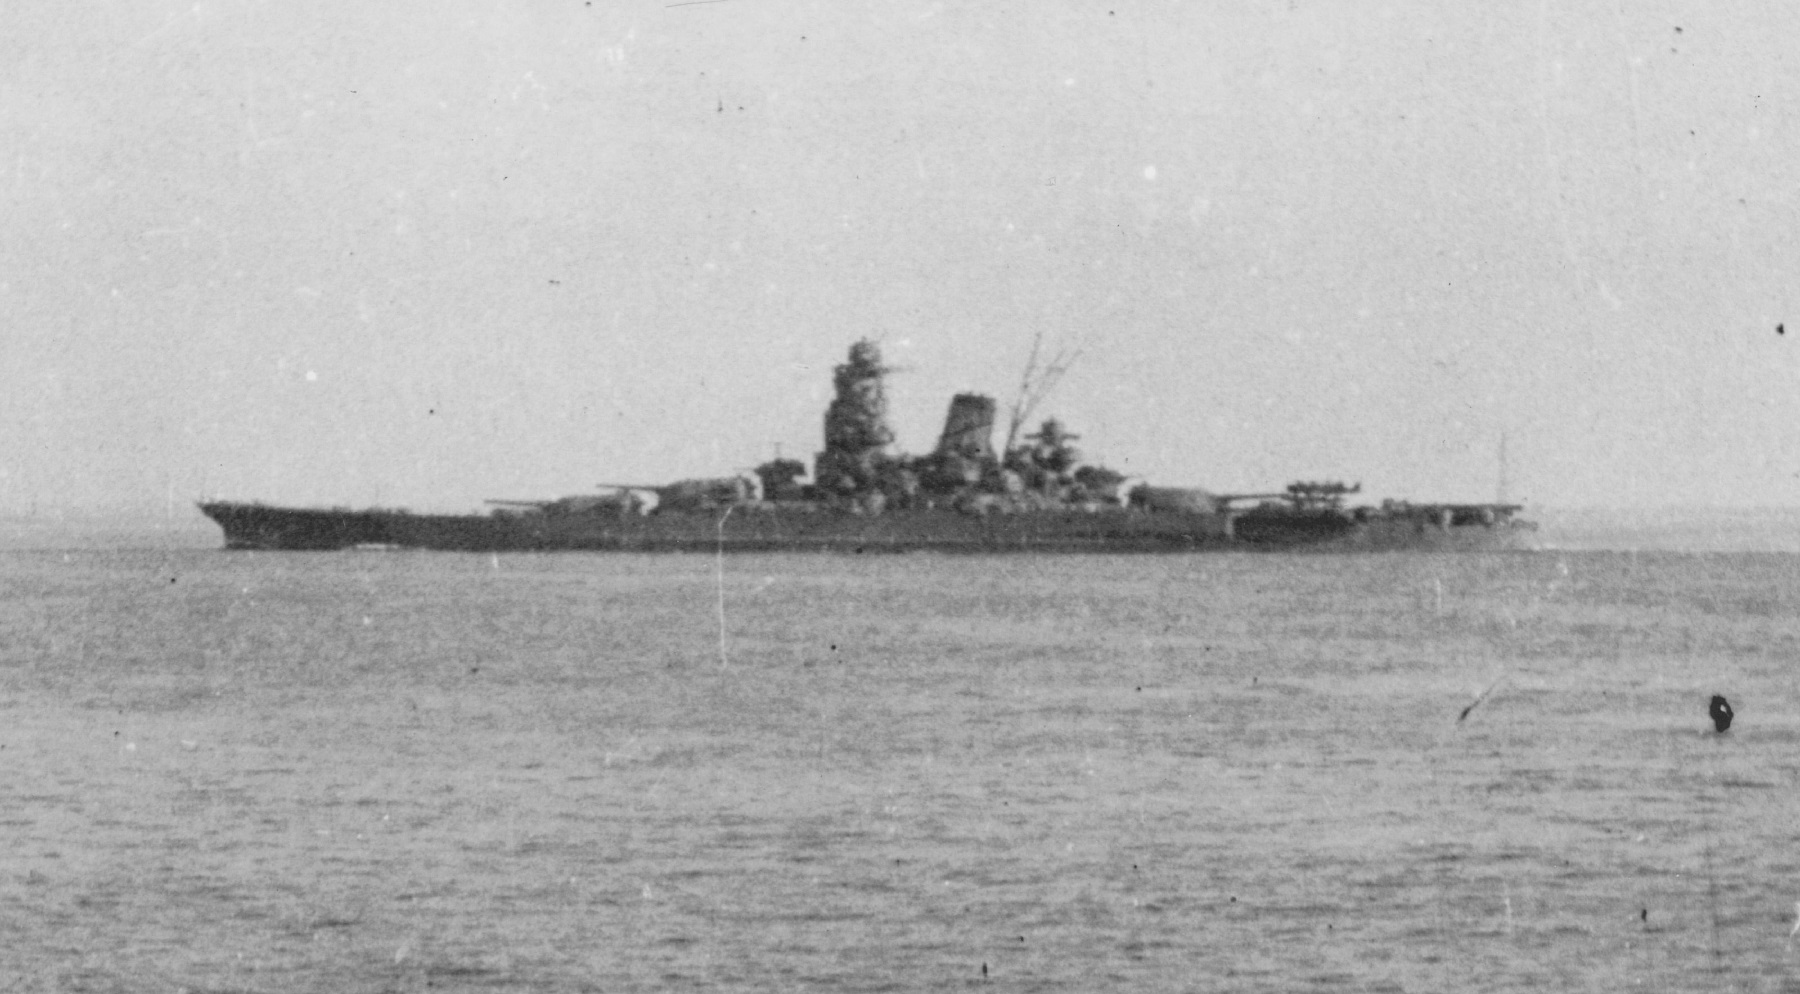 See This Battleship? It Took An Unthinkable Amount of Weapons to Sink